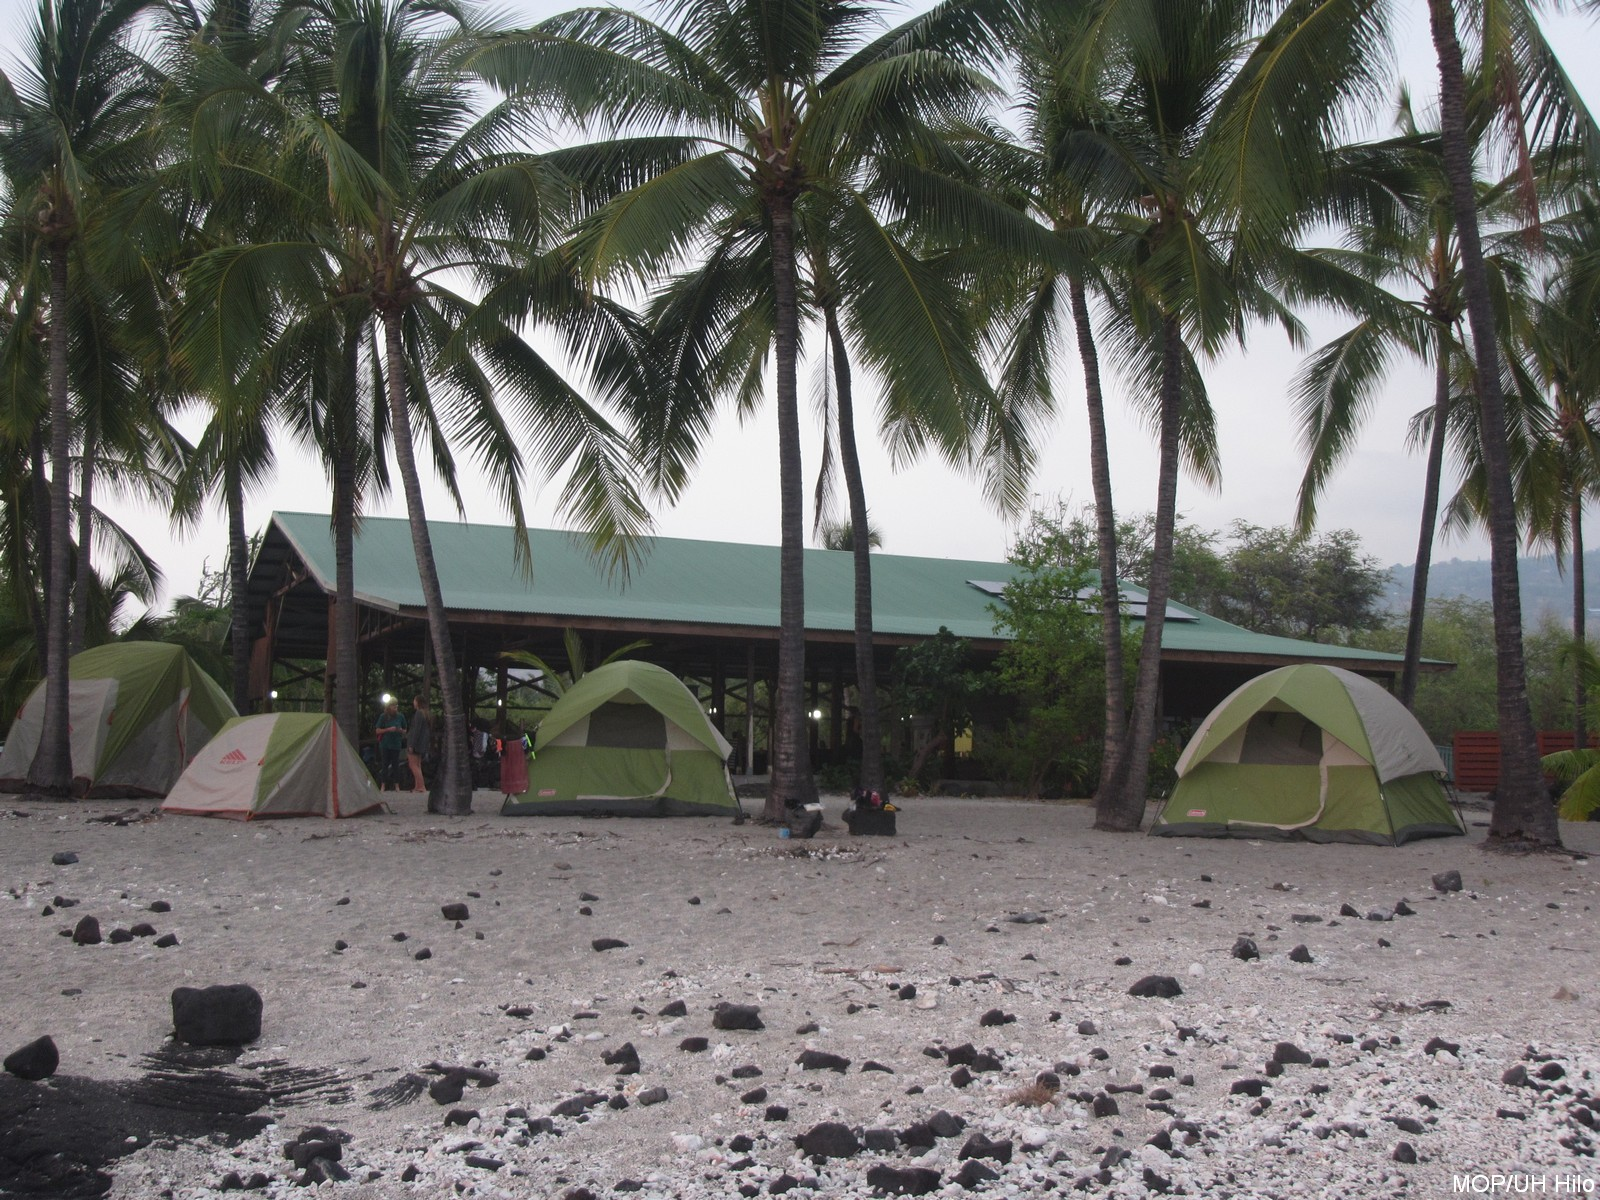 Tents set up on the beach.